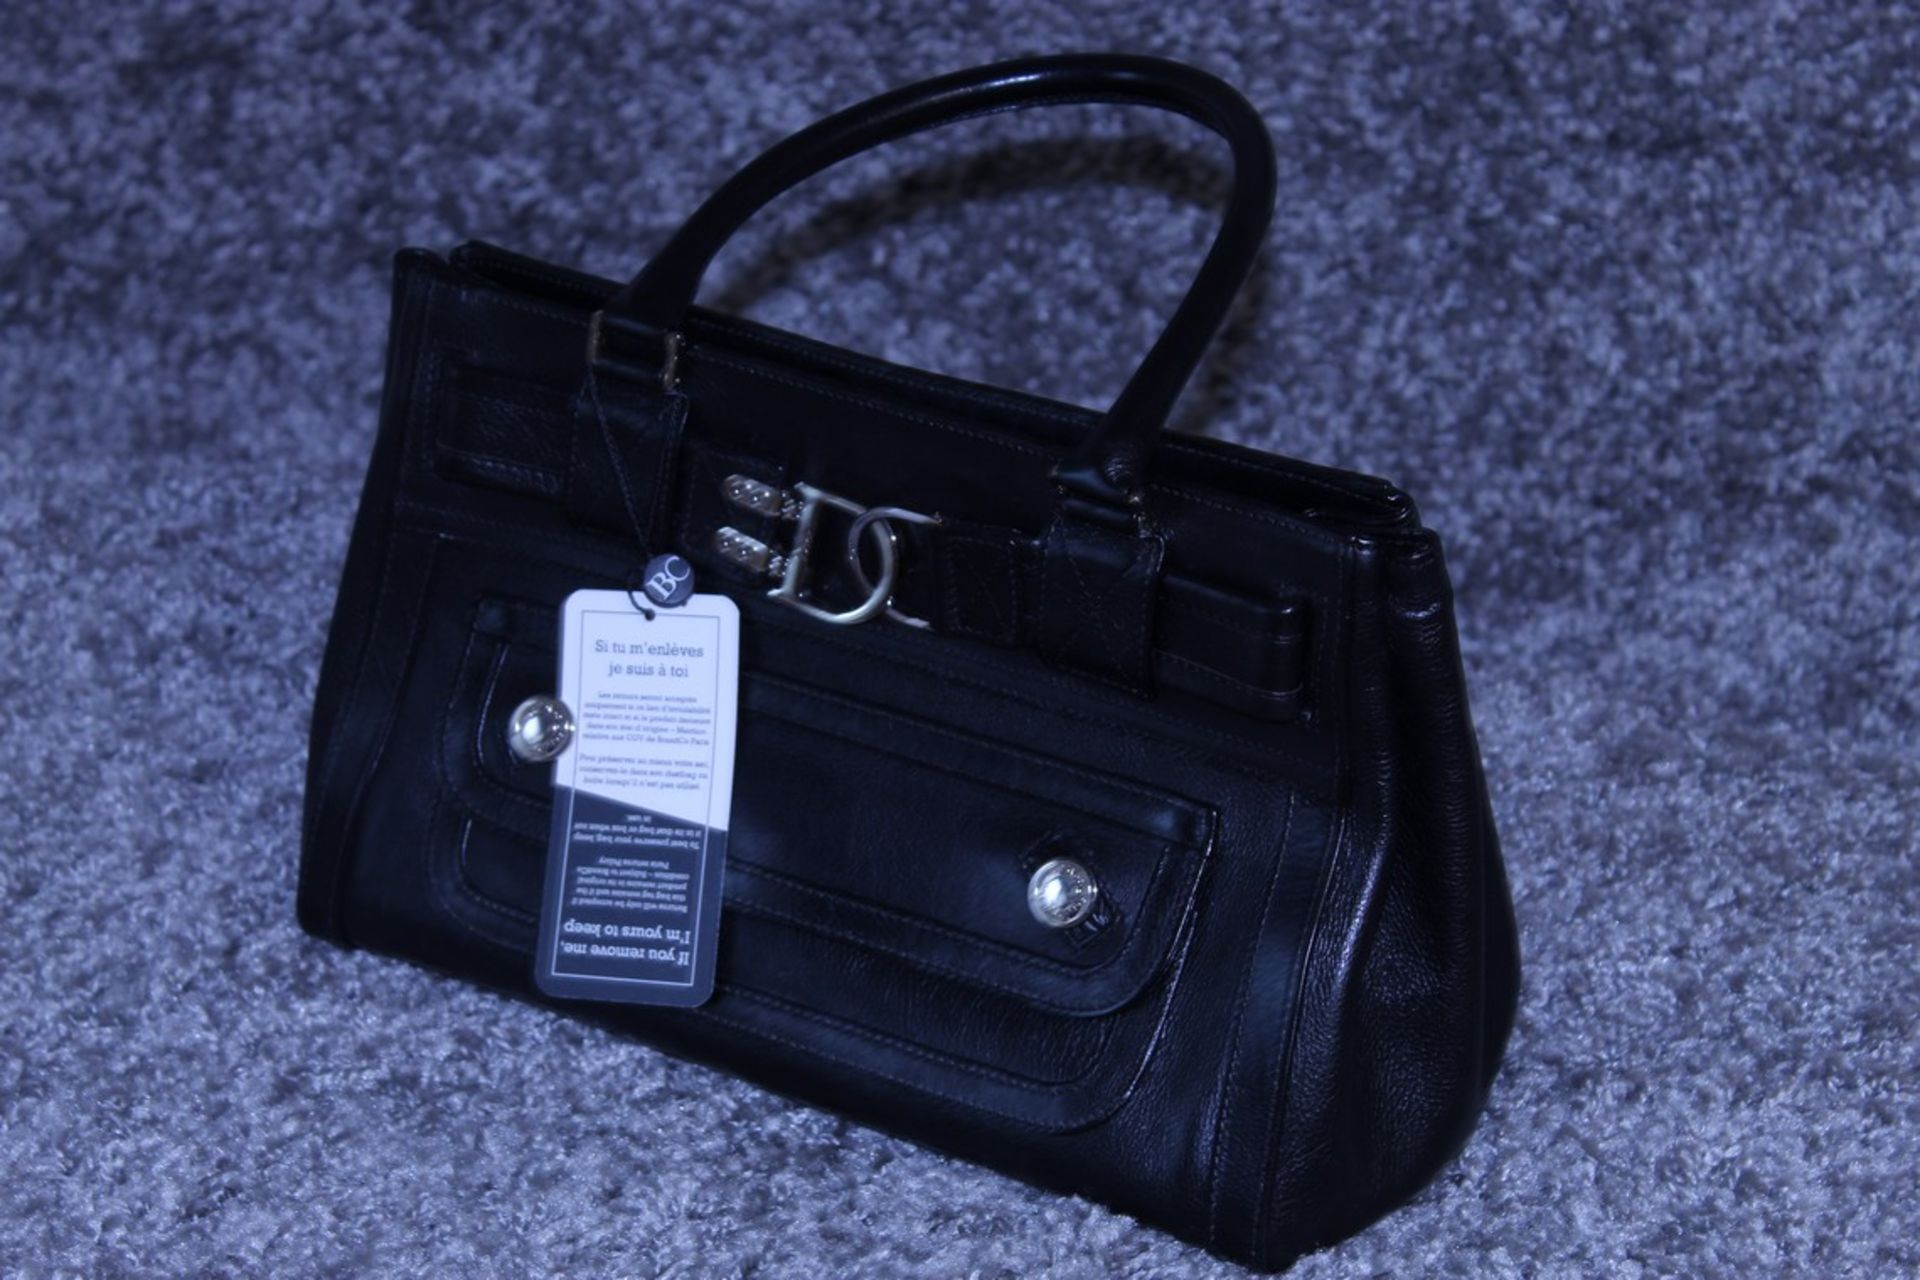 RRP £1300 Dior Interlocking D Belt Handbag In Black Calf Leather With Black Leather Handles. ( - Image 3 of 4